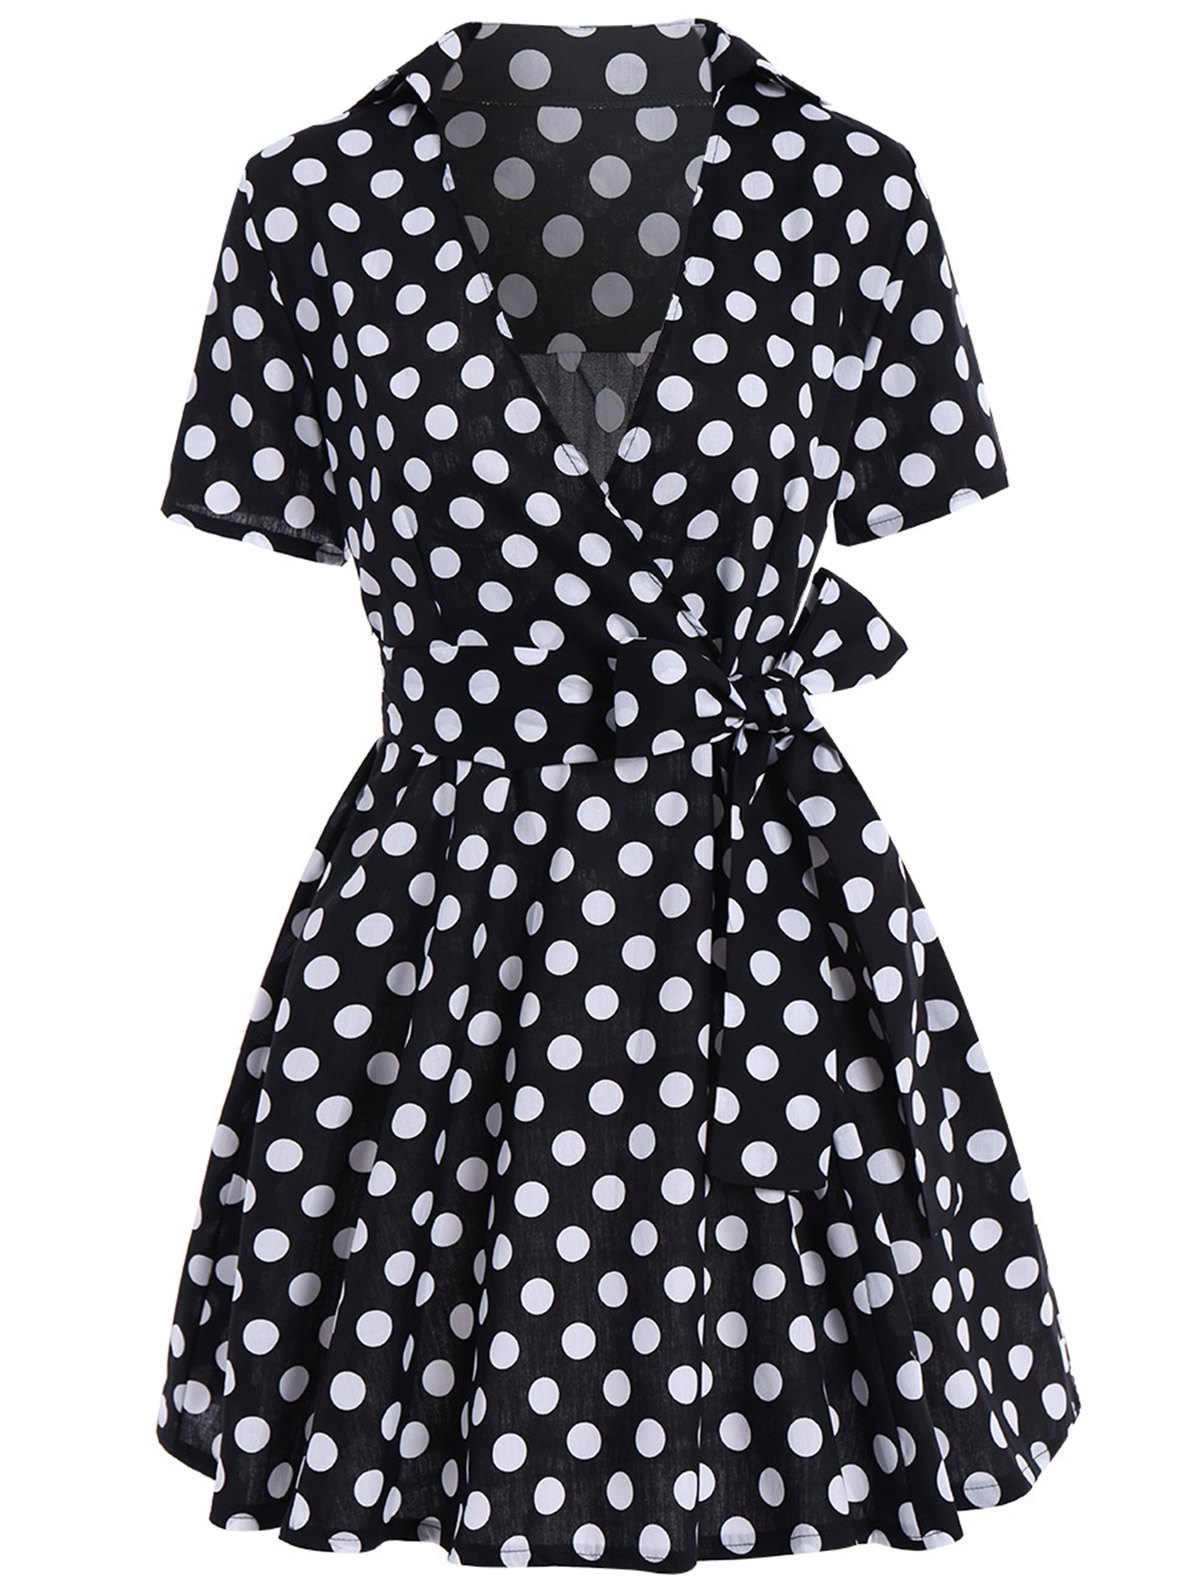 Chic Belted Polka Dot Short Sleeve Wrap Dress